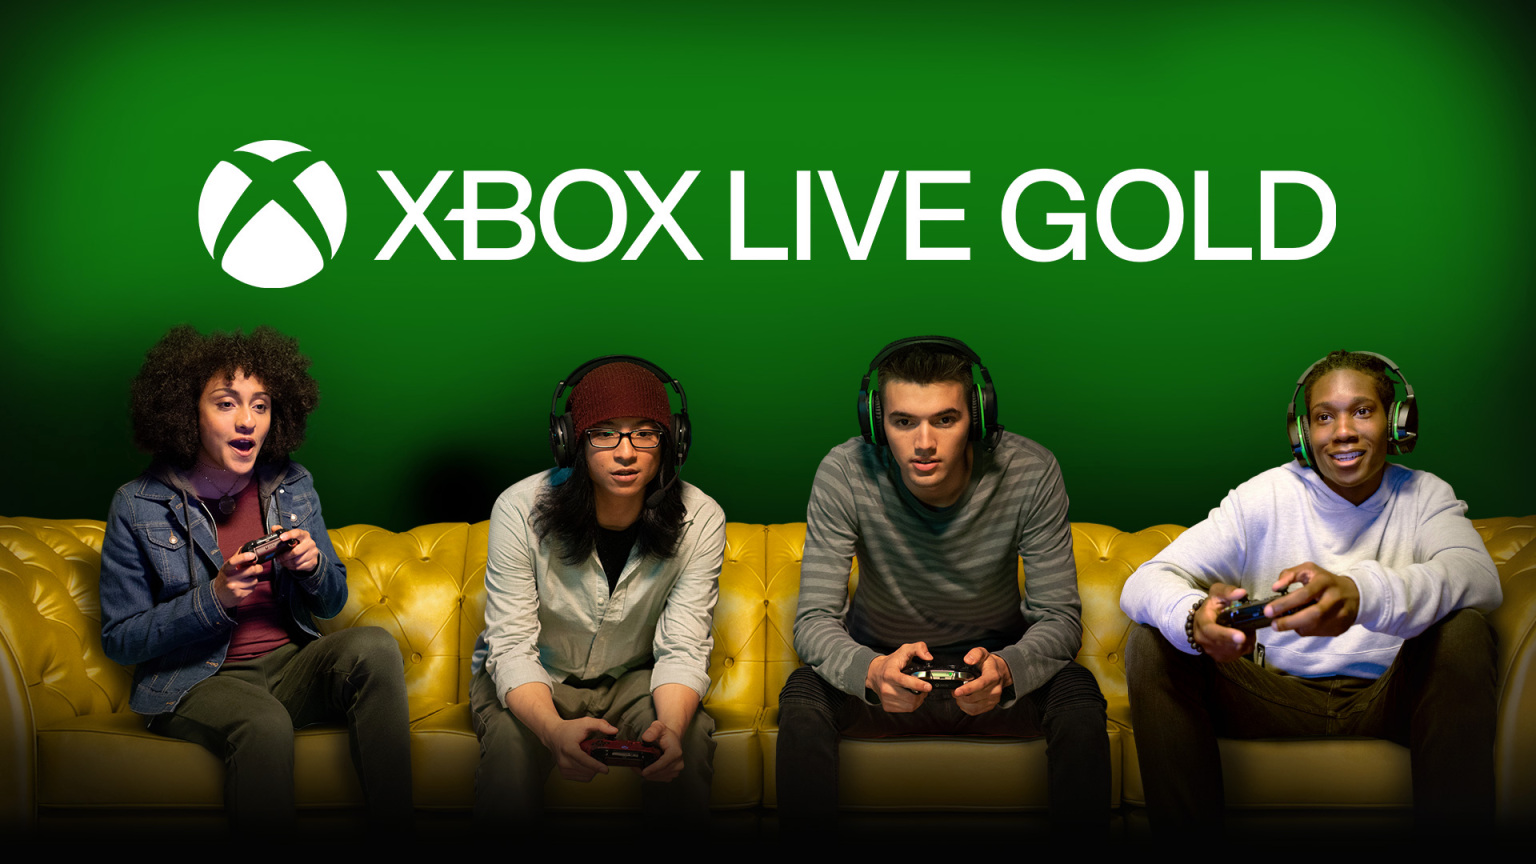 Xbox Live Gold just got more expensive, and people are furious